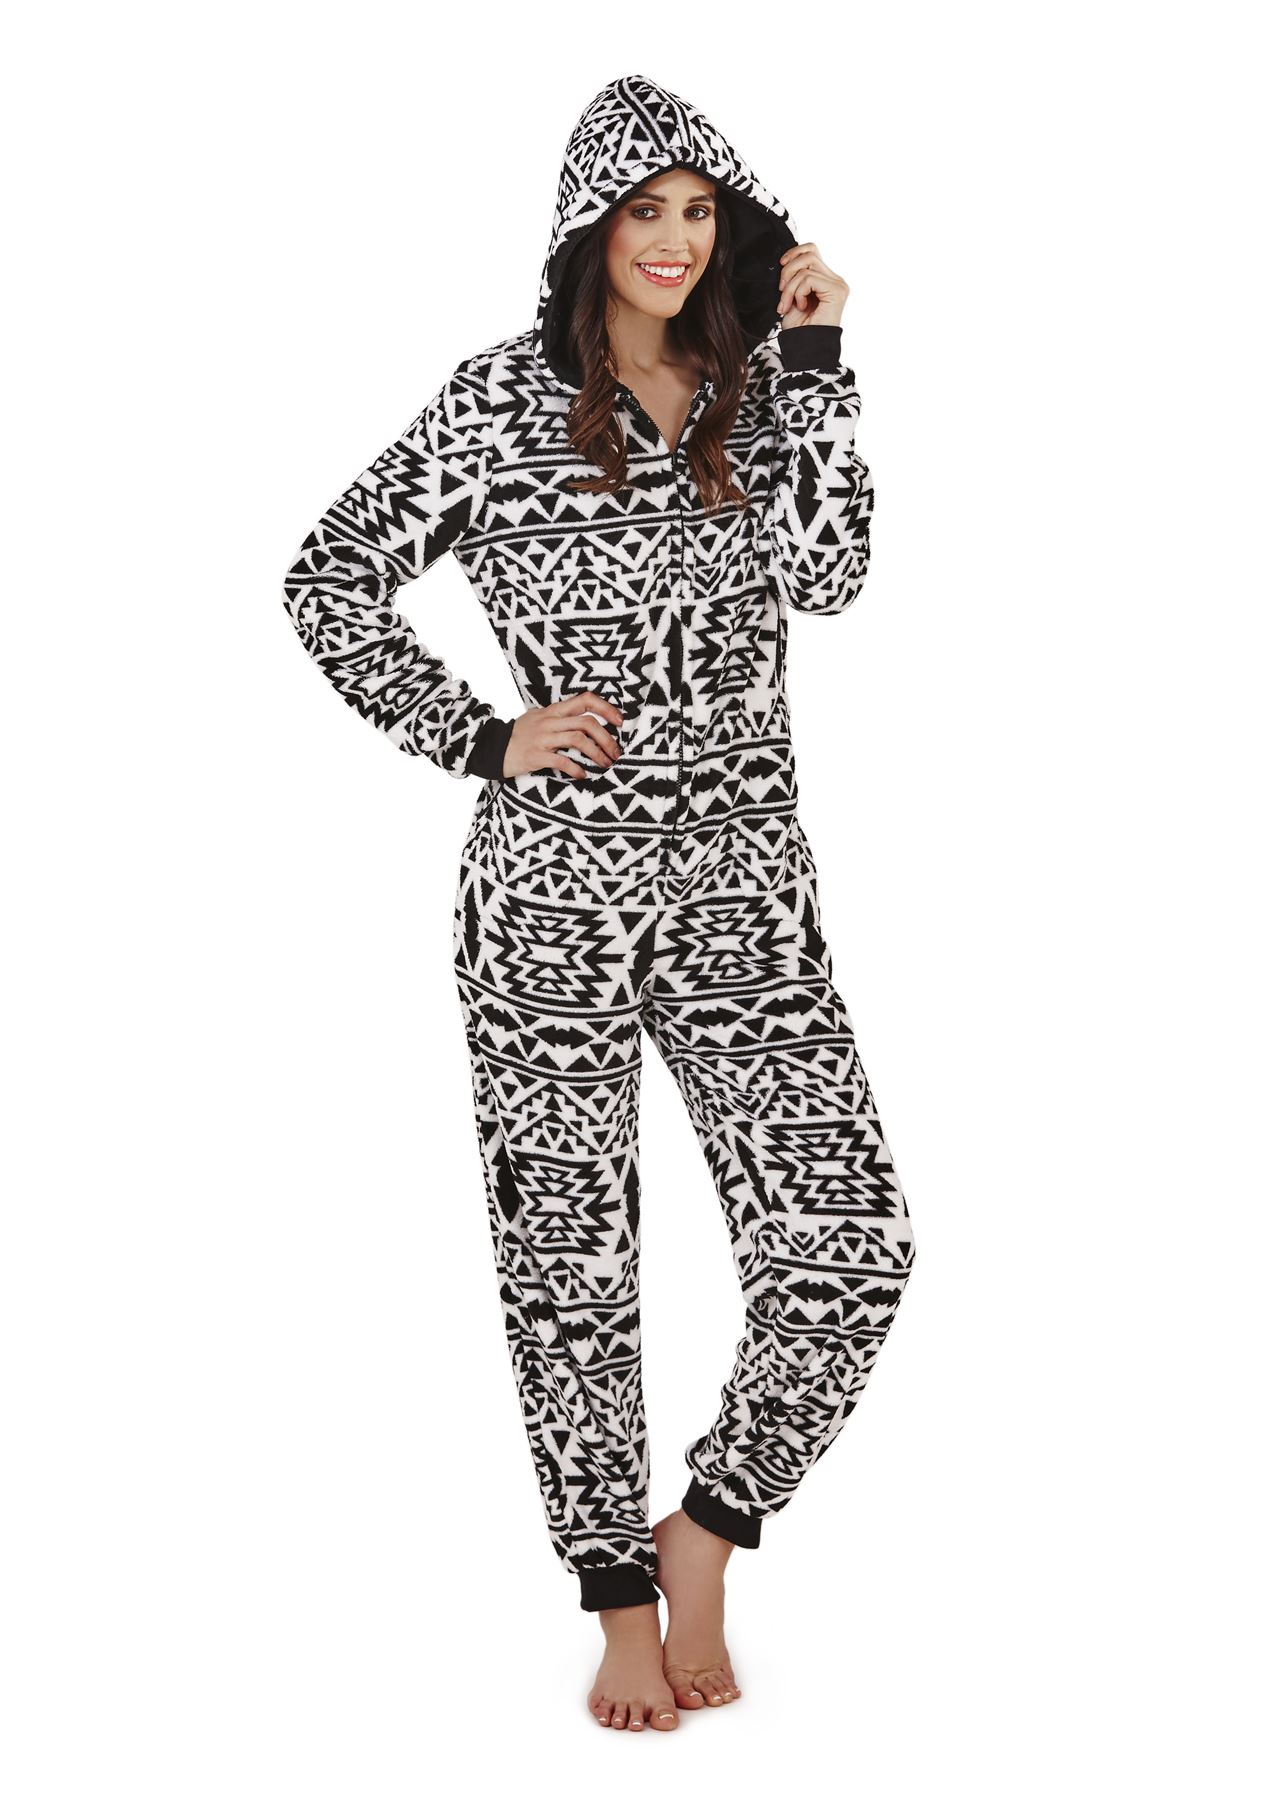 Women's Adult Onesie Pajamas. invalid category id. Women's Adult Onesie Pajamas. Showing 48 of results that match your query. Search Product Result. Product - Minons women's and women's plus sleepwear adult costume union suit pajama (xs-3x) Product Image. Price. In-store purchase only.